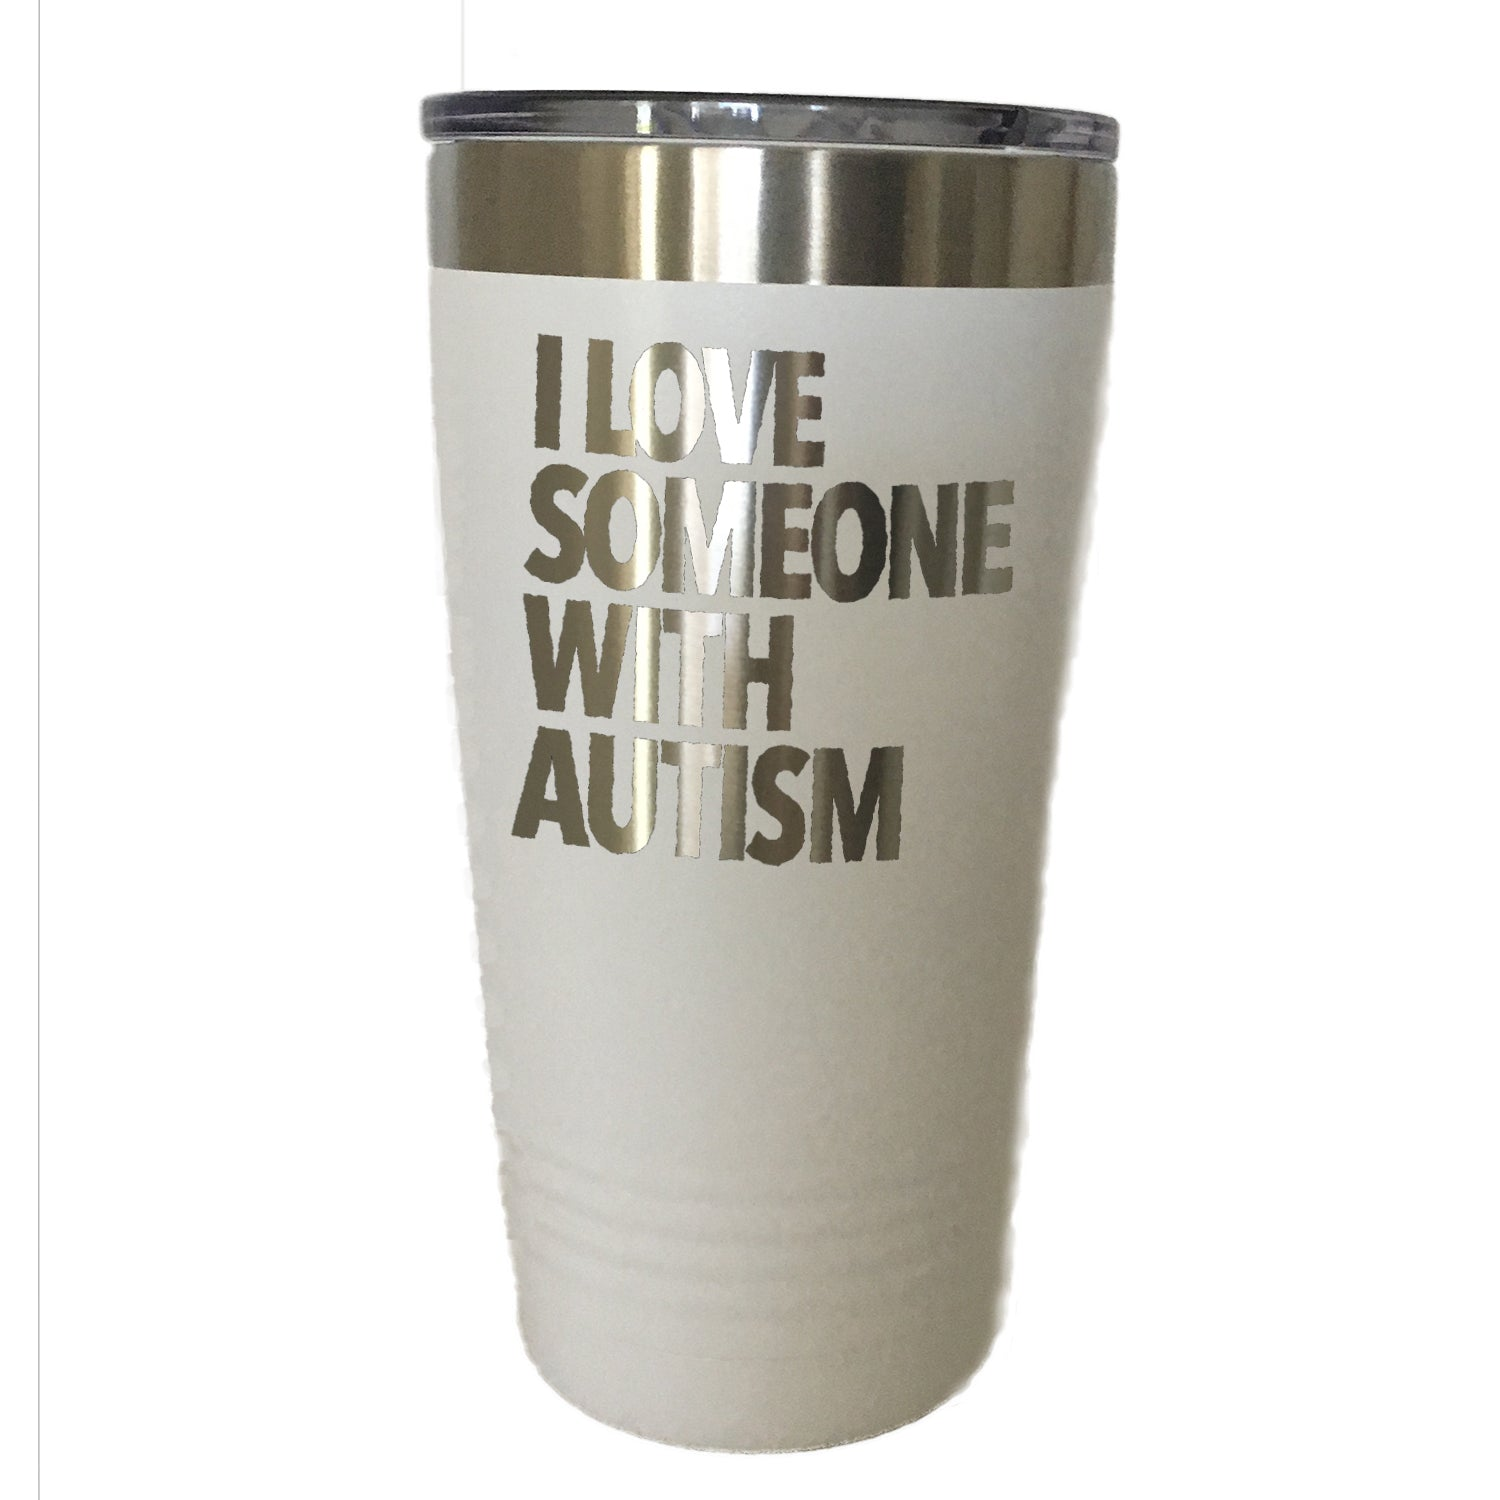 I Love Someone With Autism - Tumbler Drinkware